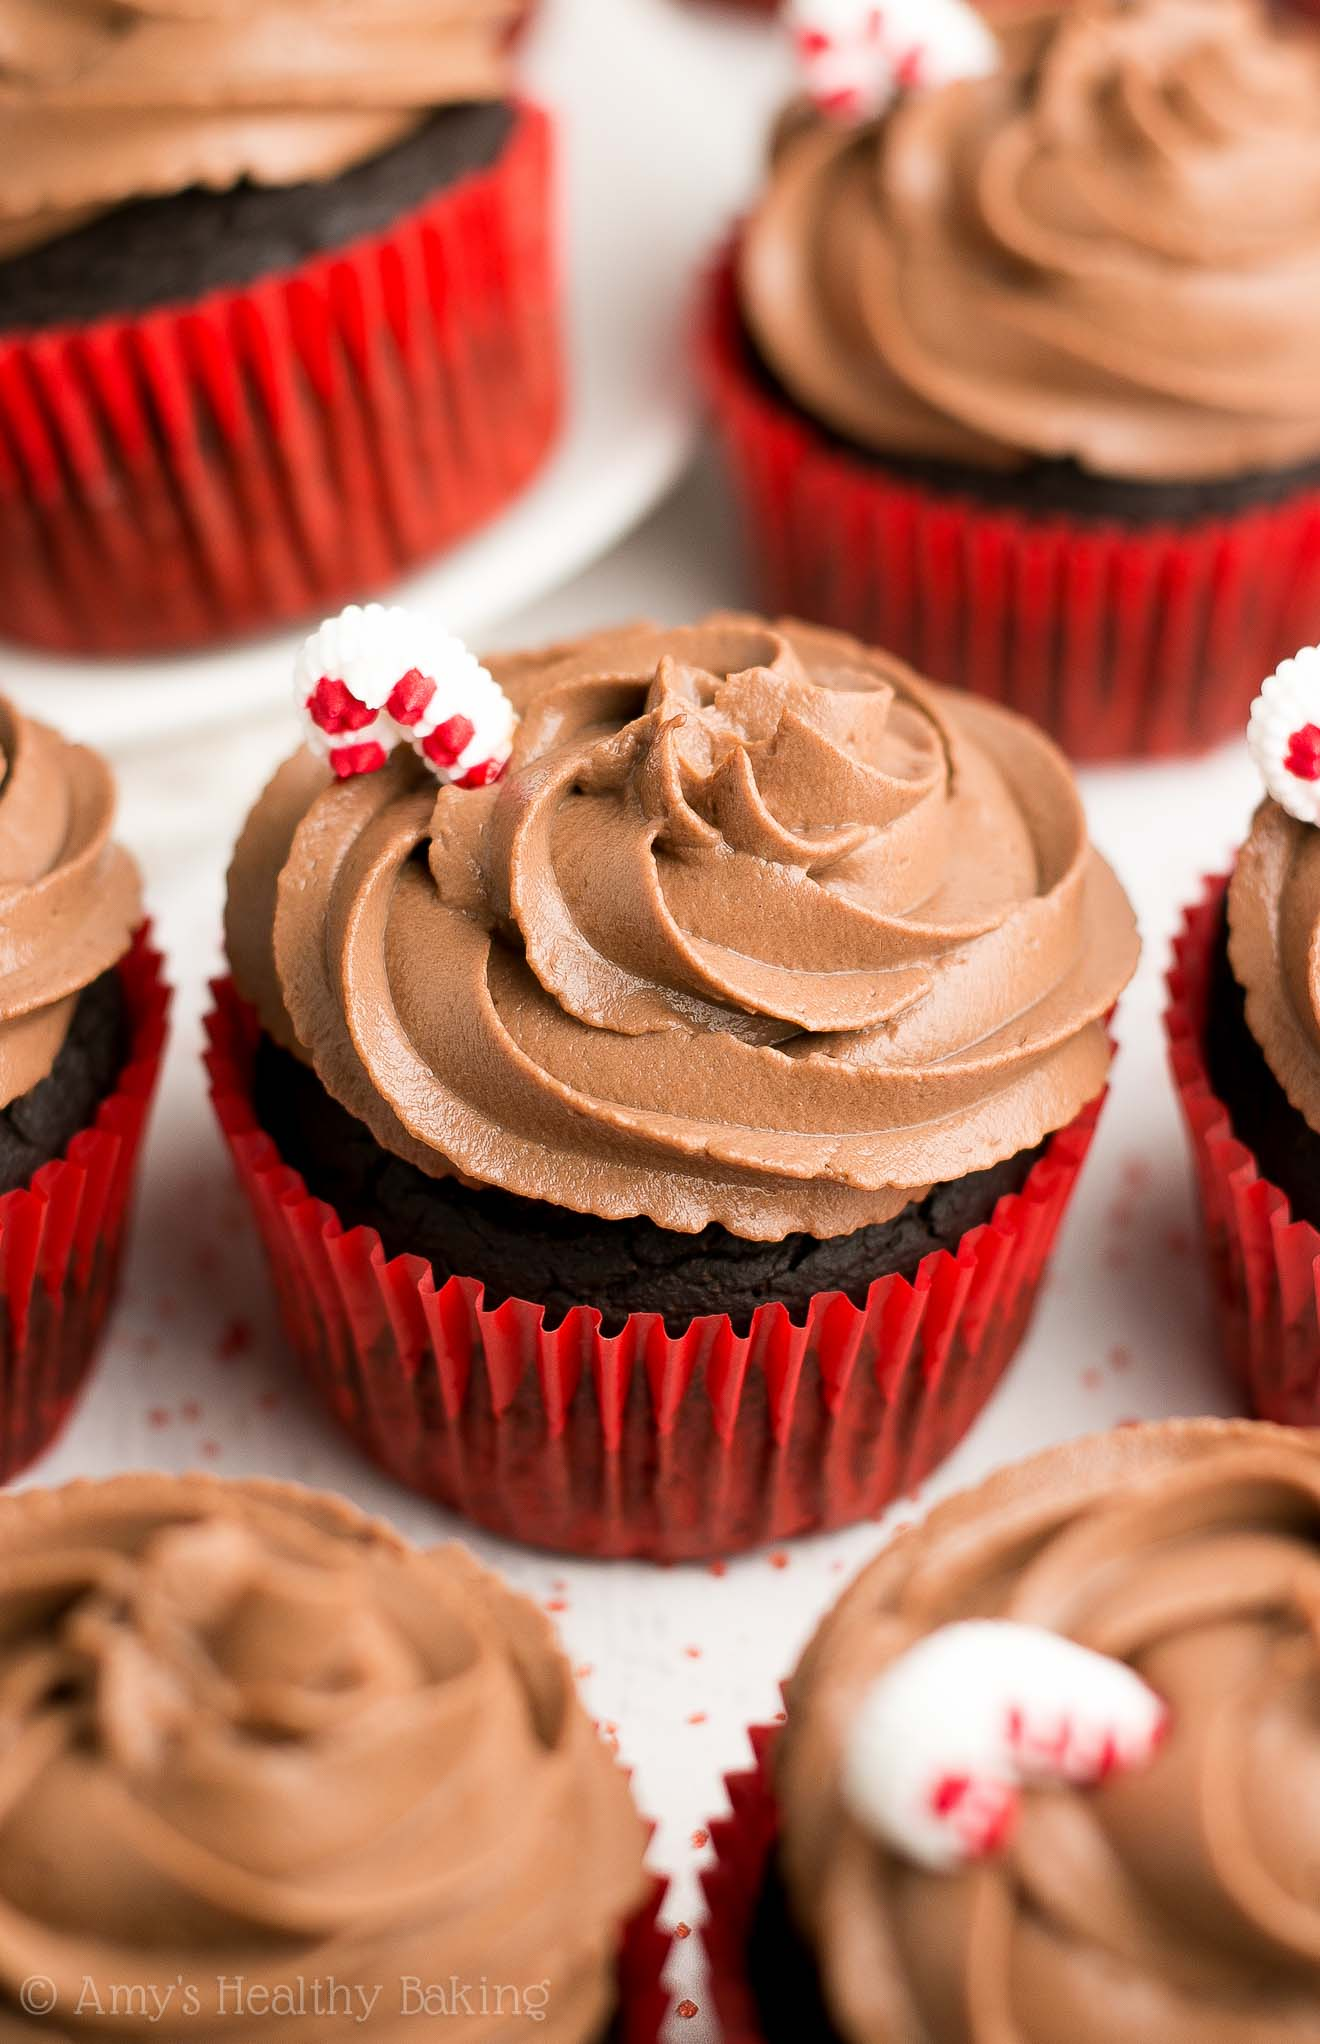 {HEALTHY!} Peppermint Mocha Cupcakes -- so rich, just like the Starbucks drink, but ONLY 96 calories! (Including the protein-packed frosting!) Such an easy & yummy holiday dessert recipe! #healthy #cleaneating #holidays #christmas #recipe #cupcakes #peppermintmocha